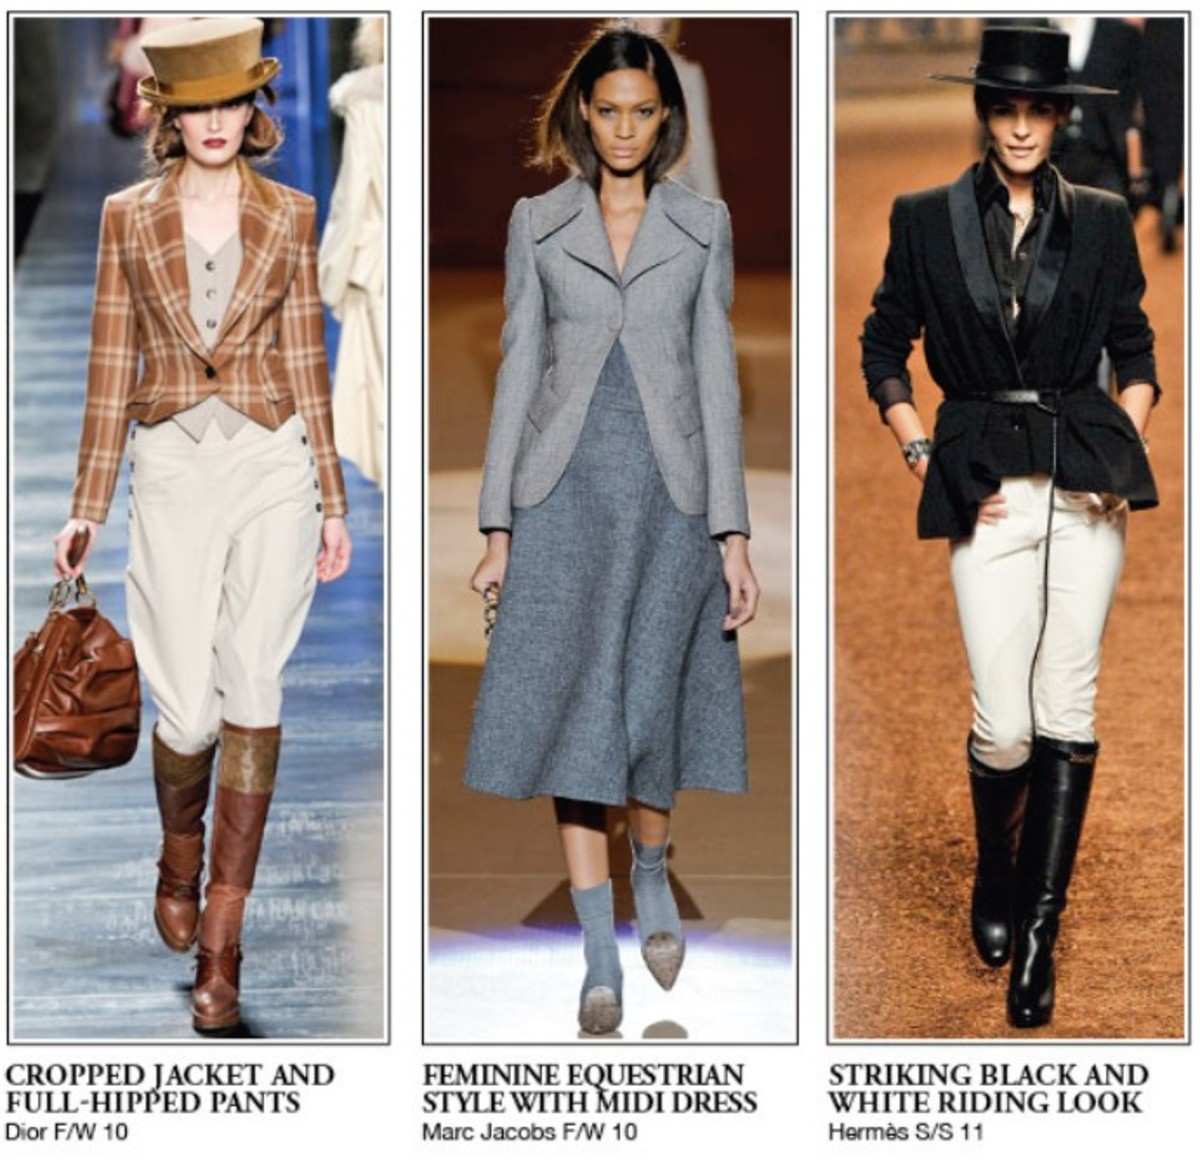 Three Fashionable Equestrian Outfits on the Run Way - All Celebrating High Style for Horse Back Riding